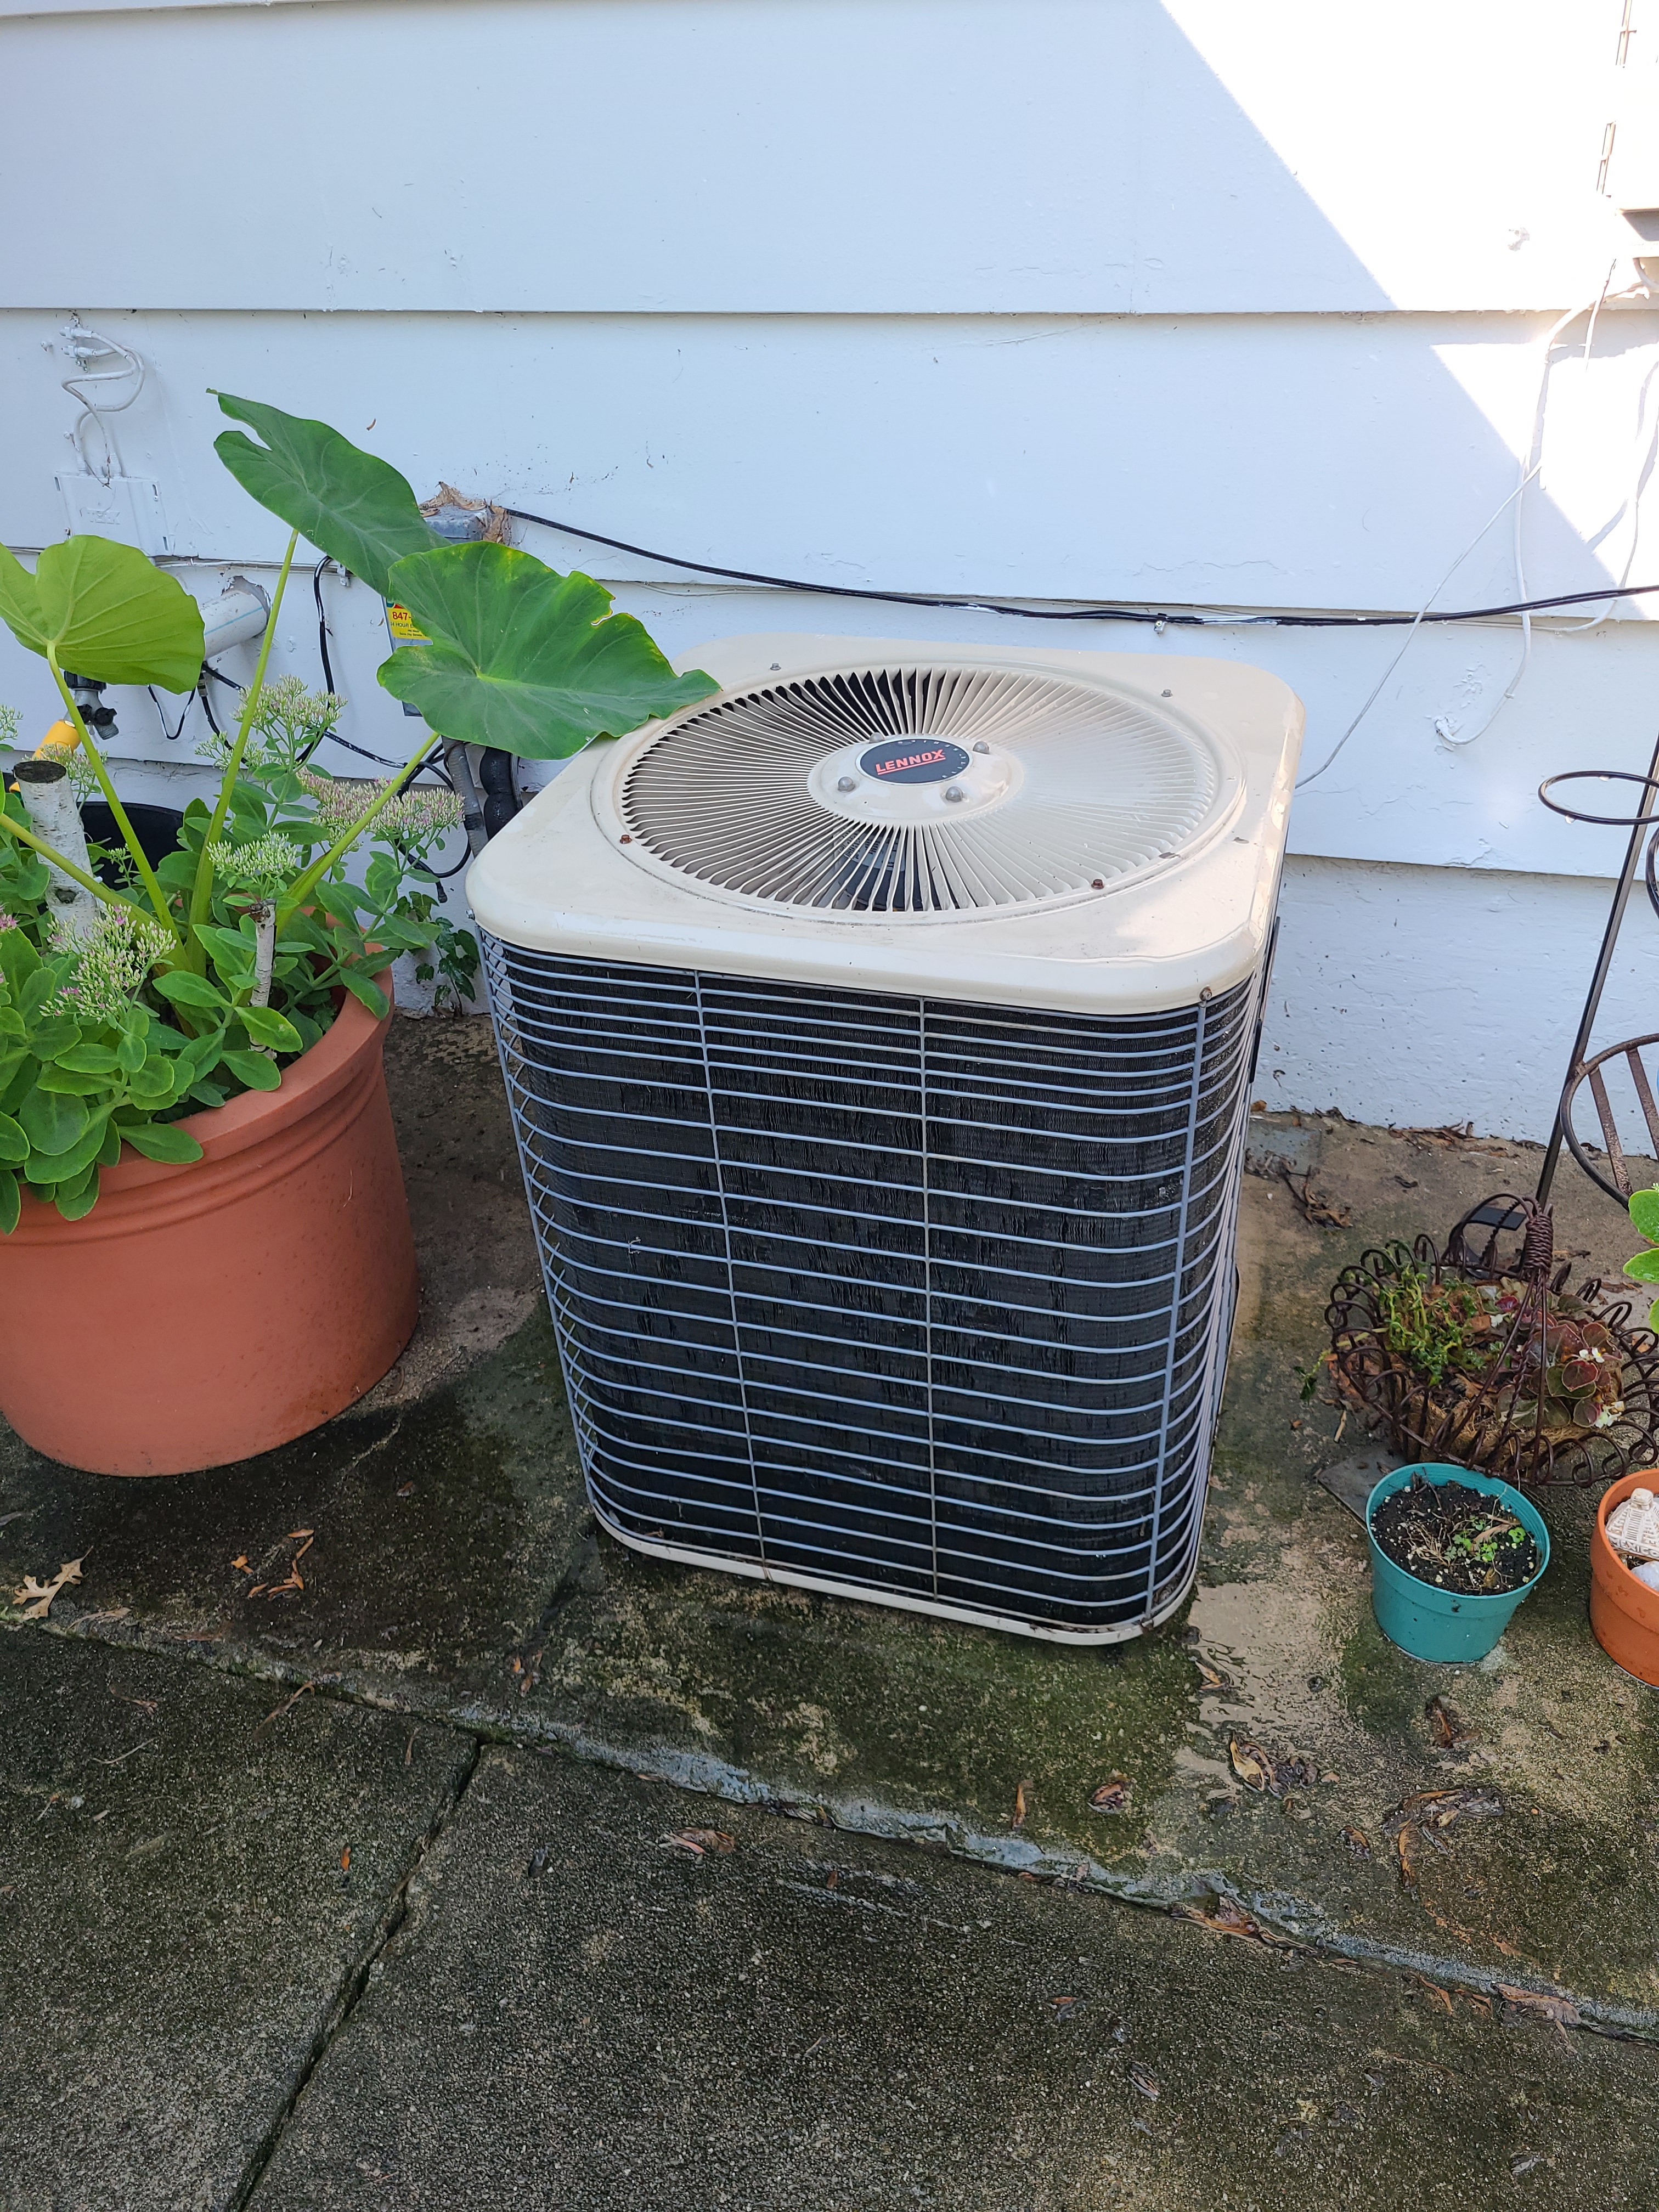 Lennox ac summer clean and check.  System tuned up and ready for summer.